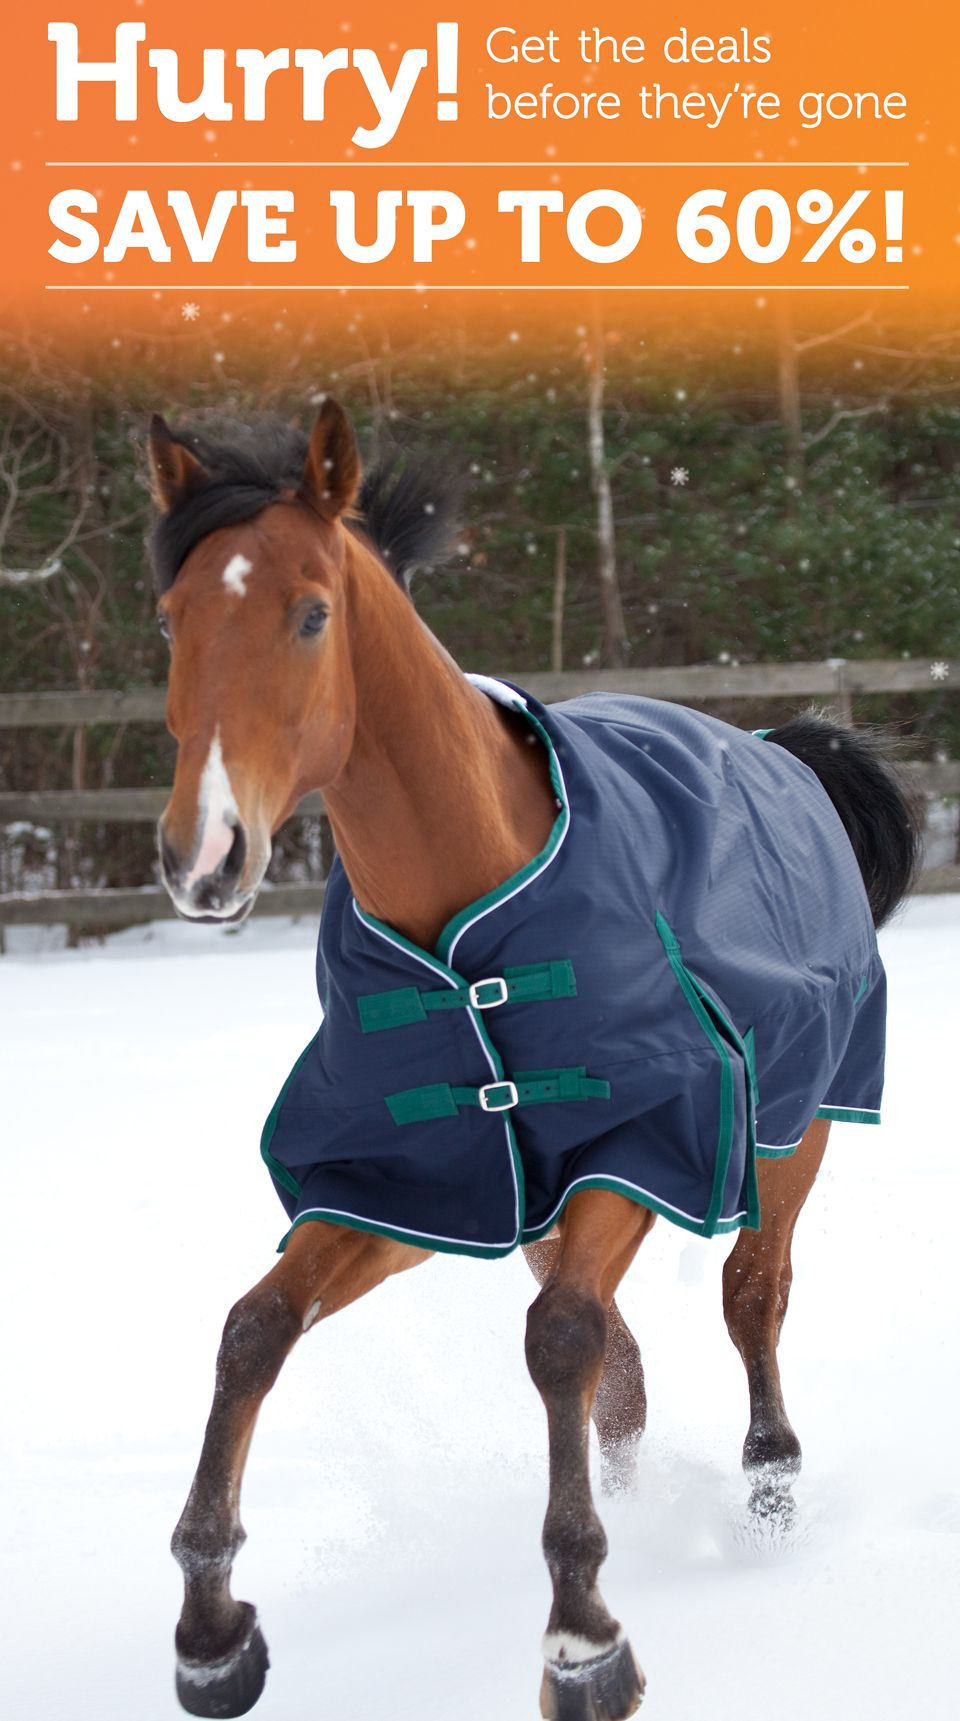 Sale From Smartpak Equine Smartpak Equine Smartpak Holiday Clearance